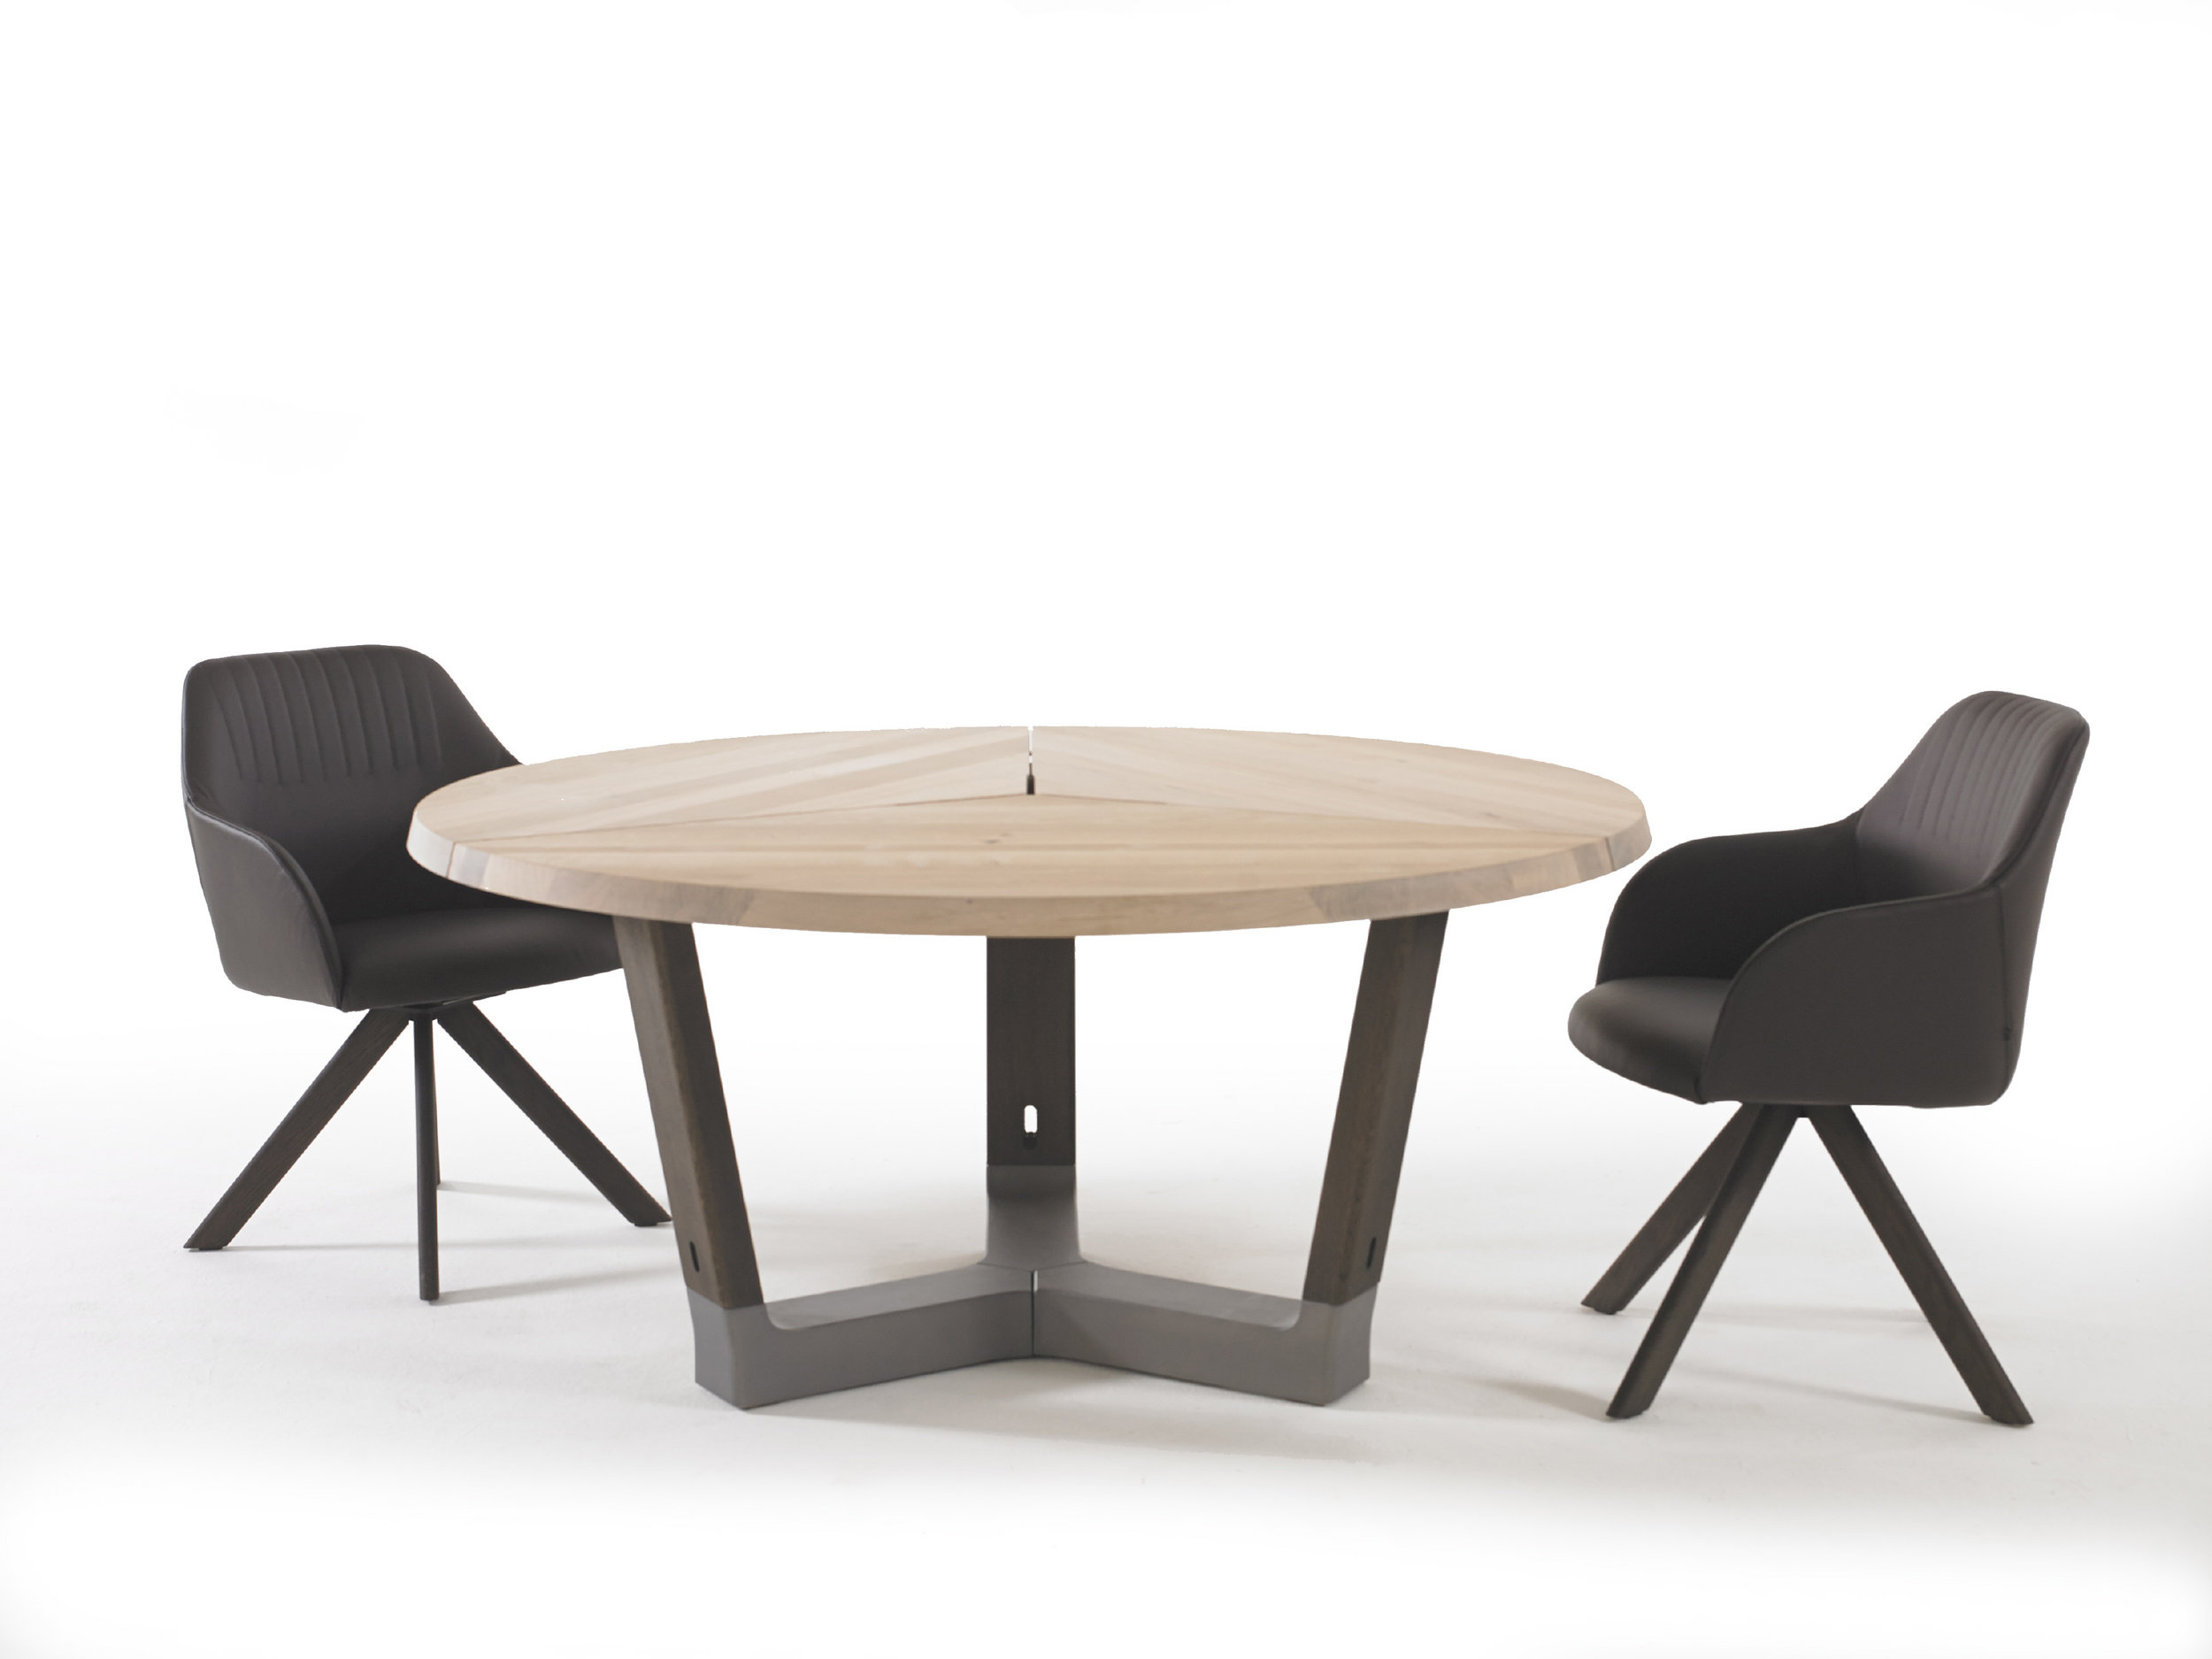 The Base Table